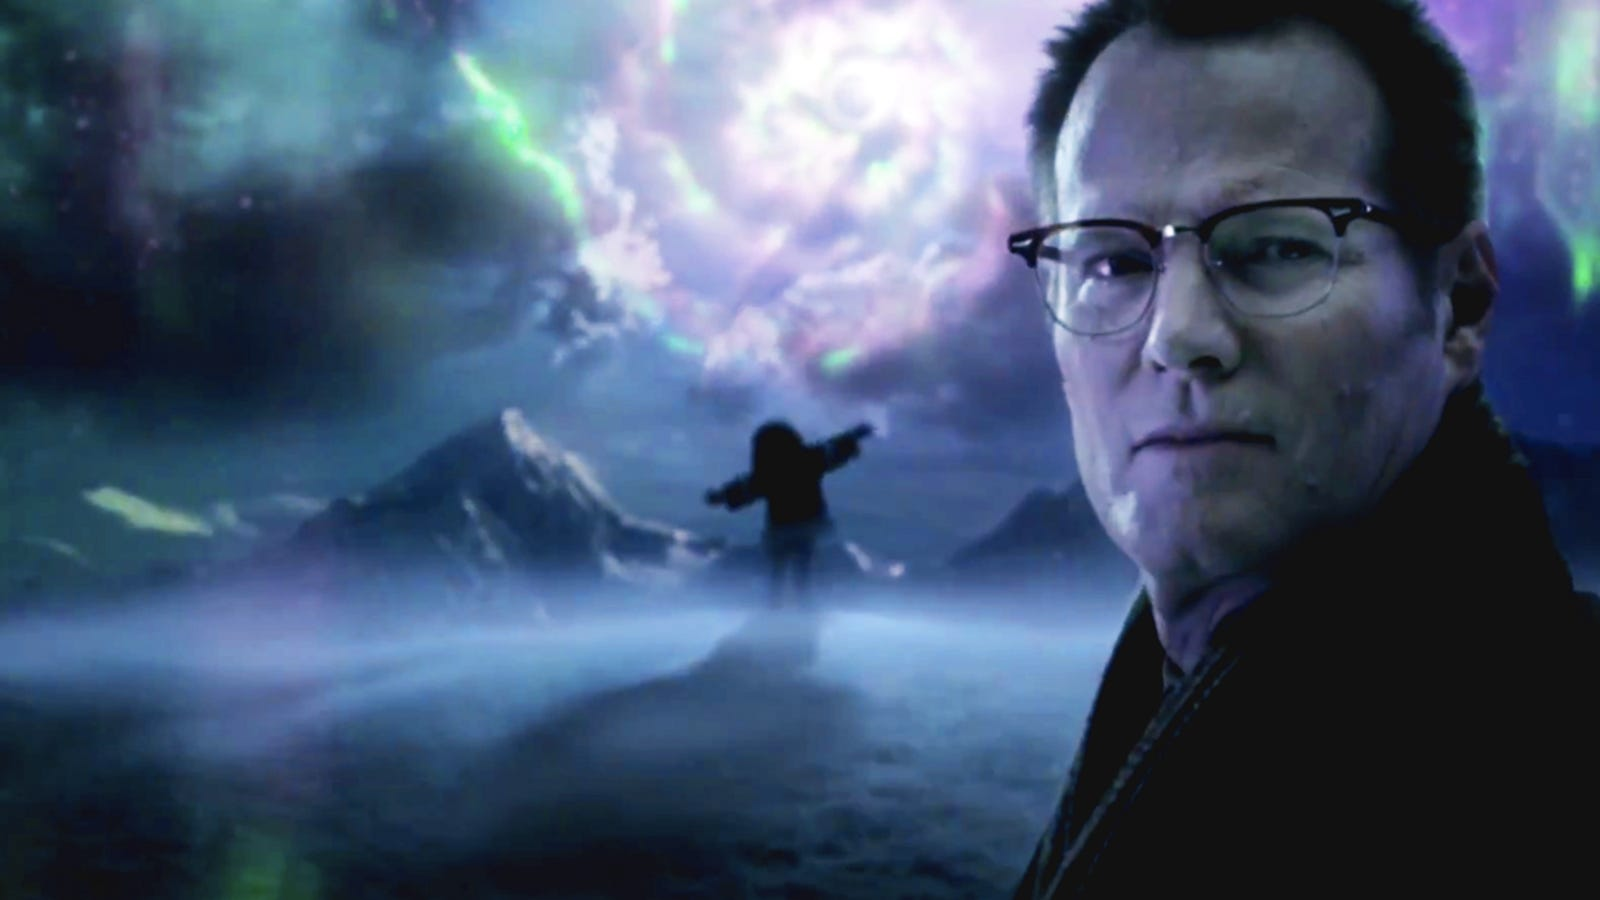 heroes reborn will probably not make you pray for the sweet release